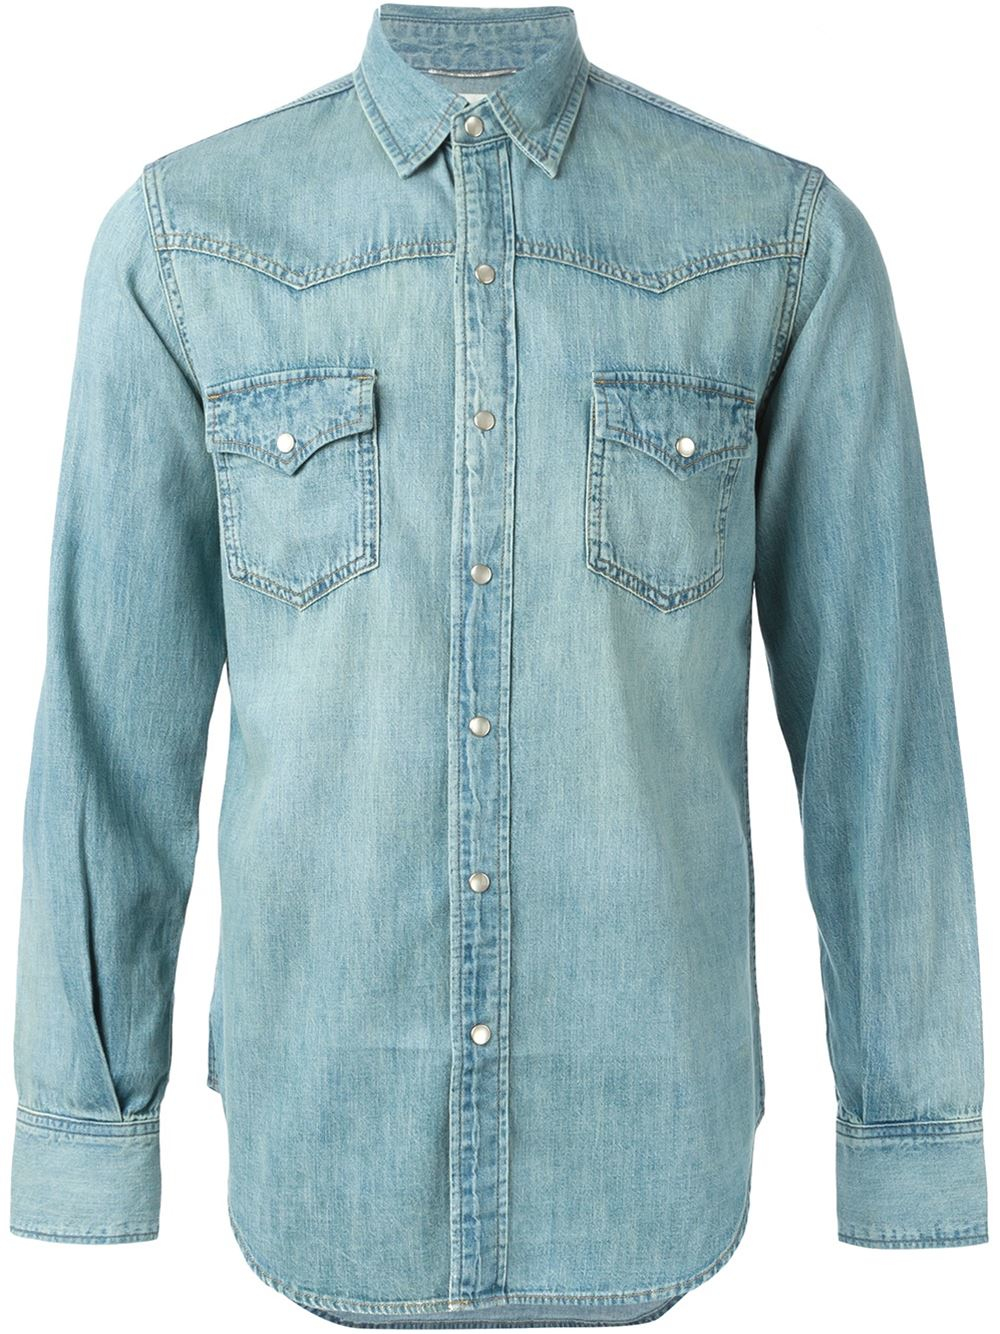 1fc724e04c Lyst - Saint Laurent Denim Western Shirt in Blue for Men